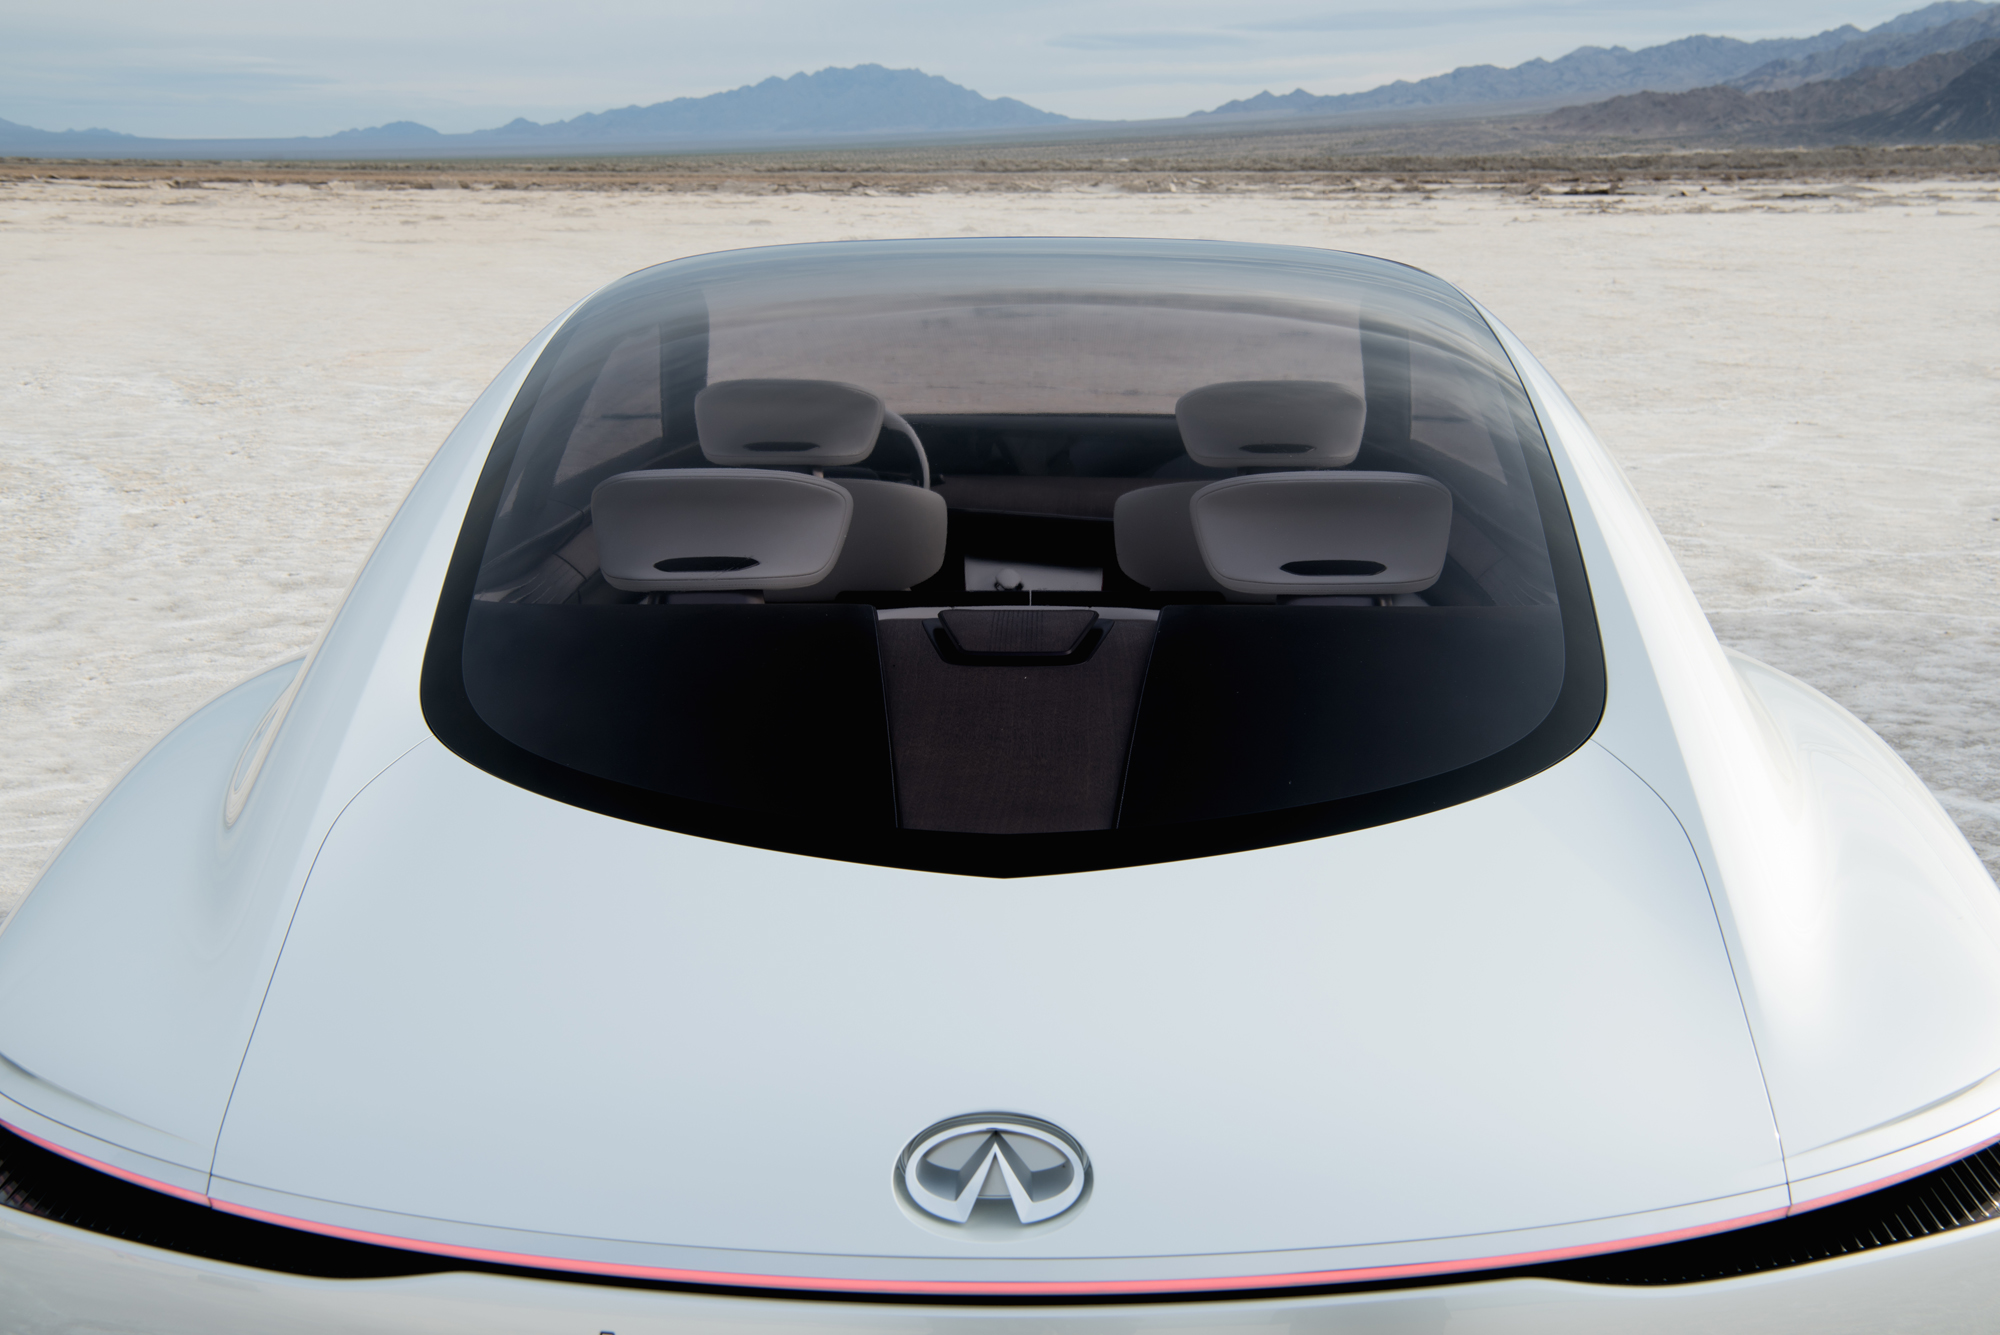 Infiniti Announces It Will Go Electric Starting In 2021 But What